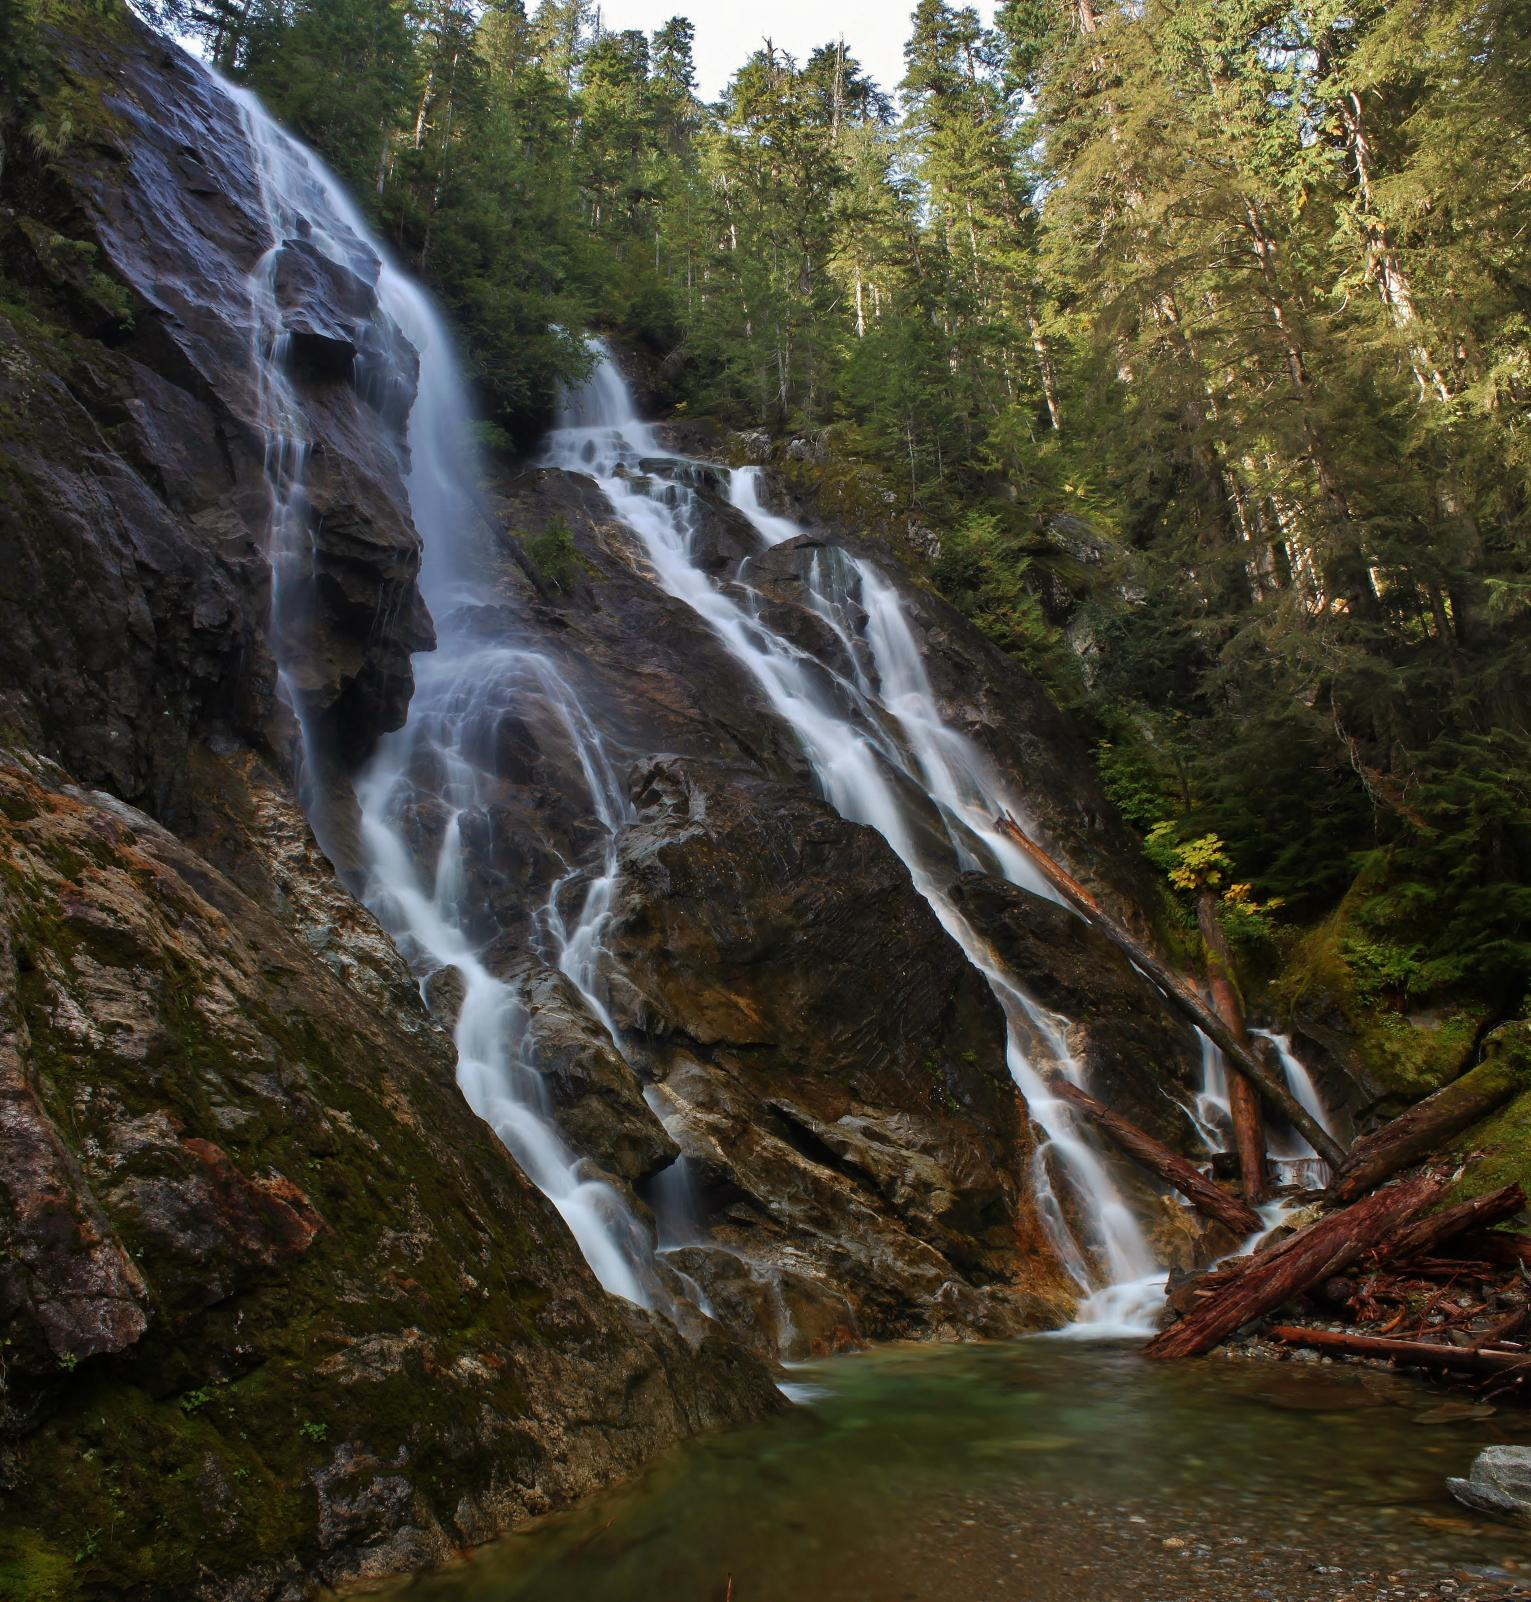 Side view of Lower Cougar Creek Falls